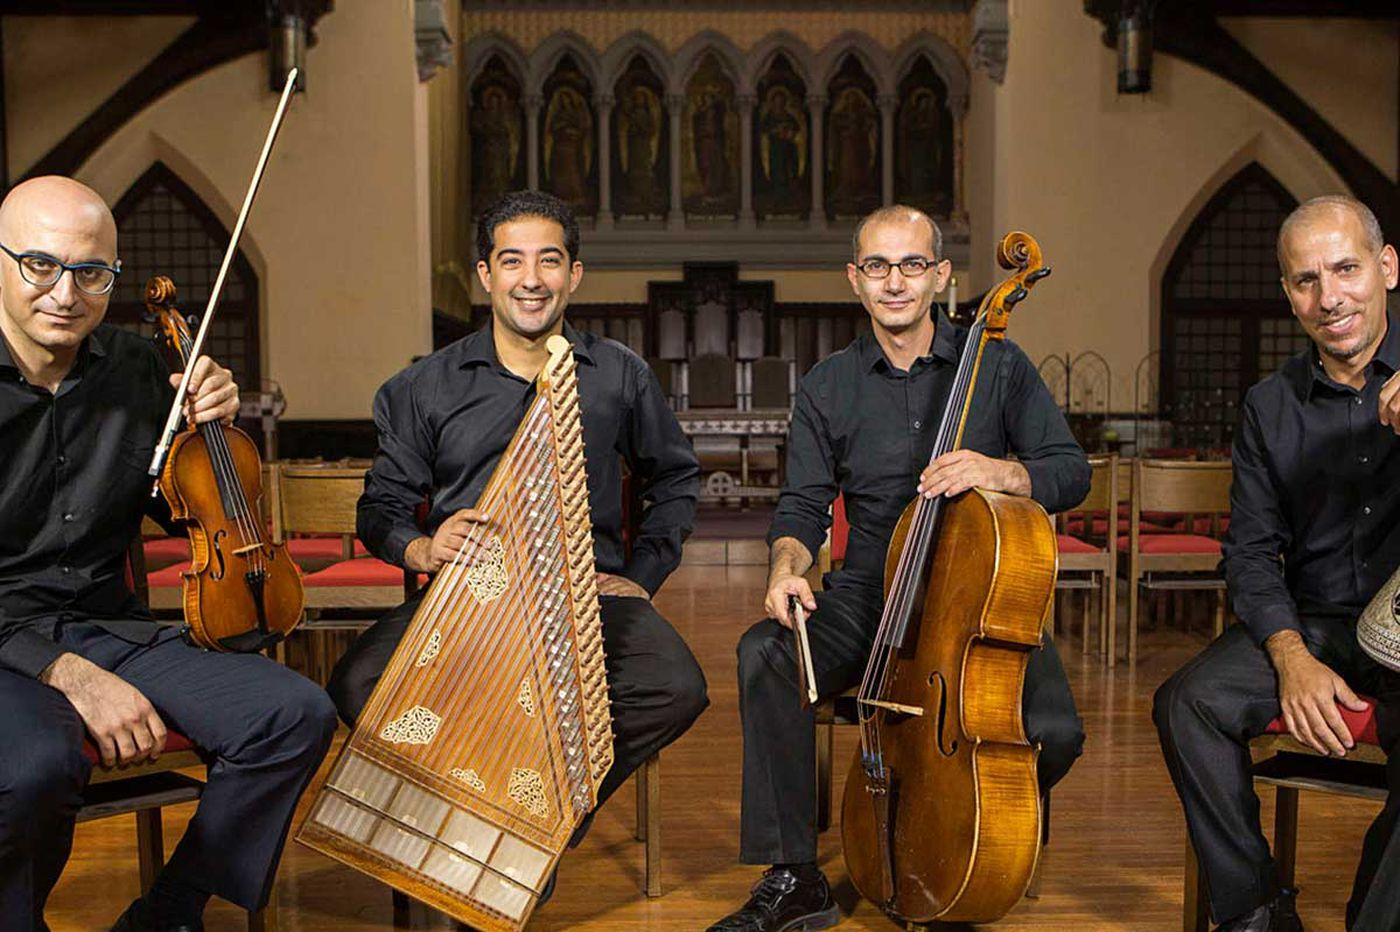 Two pieces fuse Arab and Western music